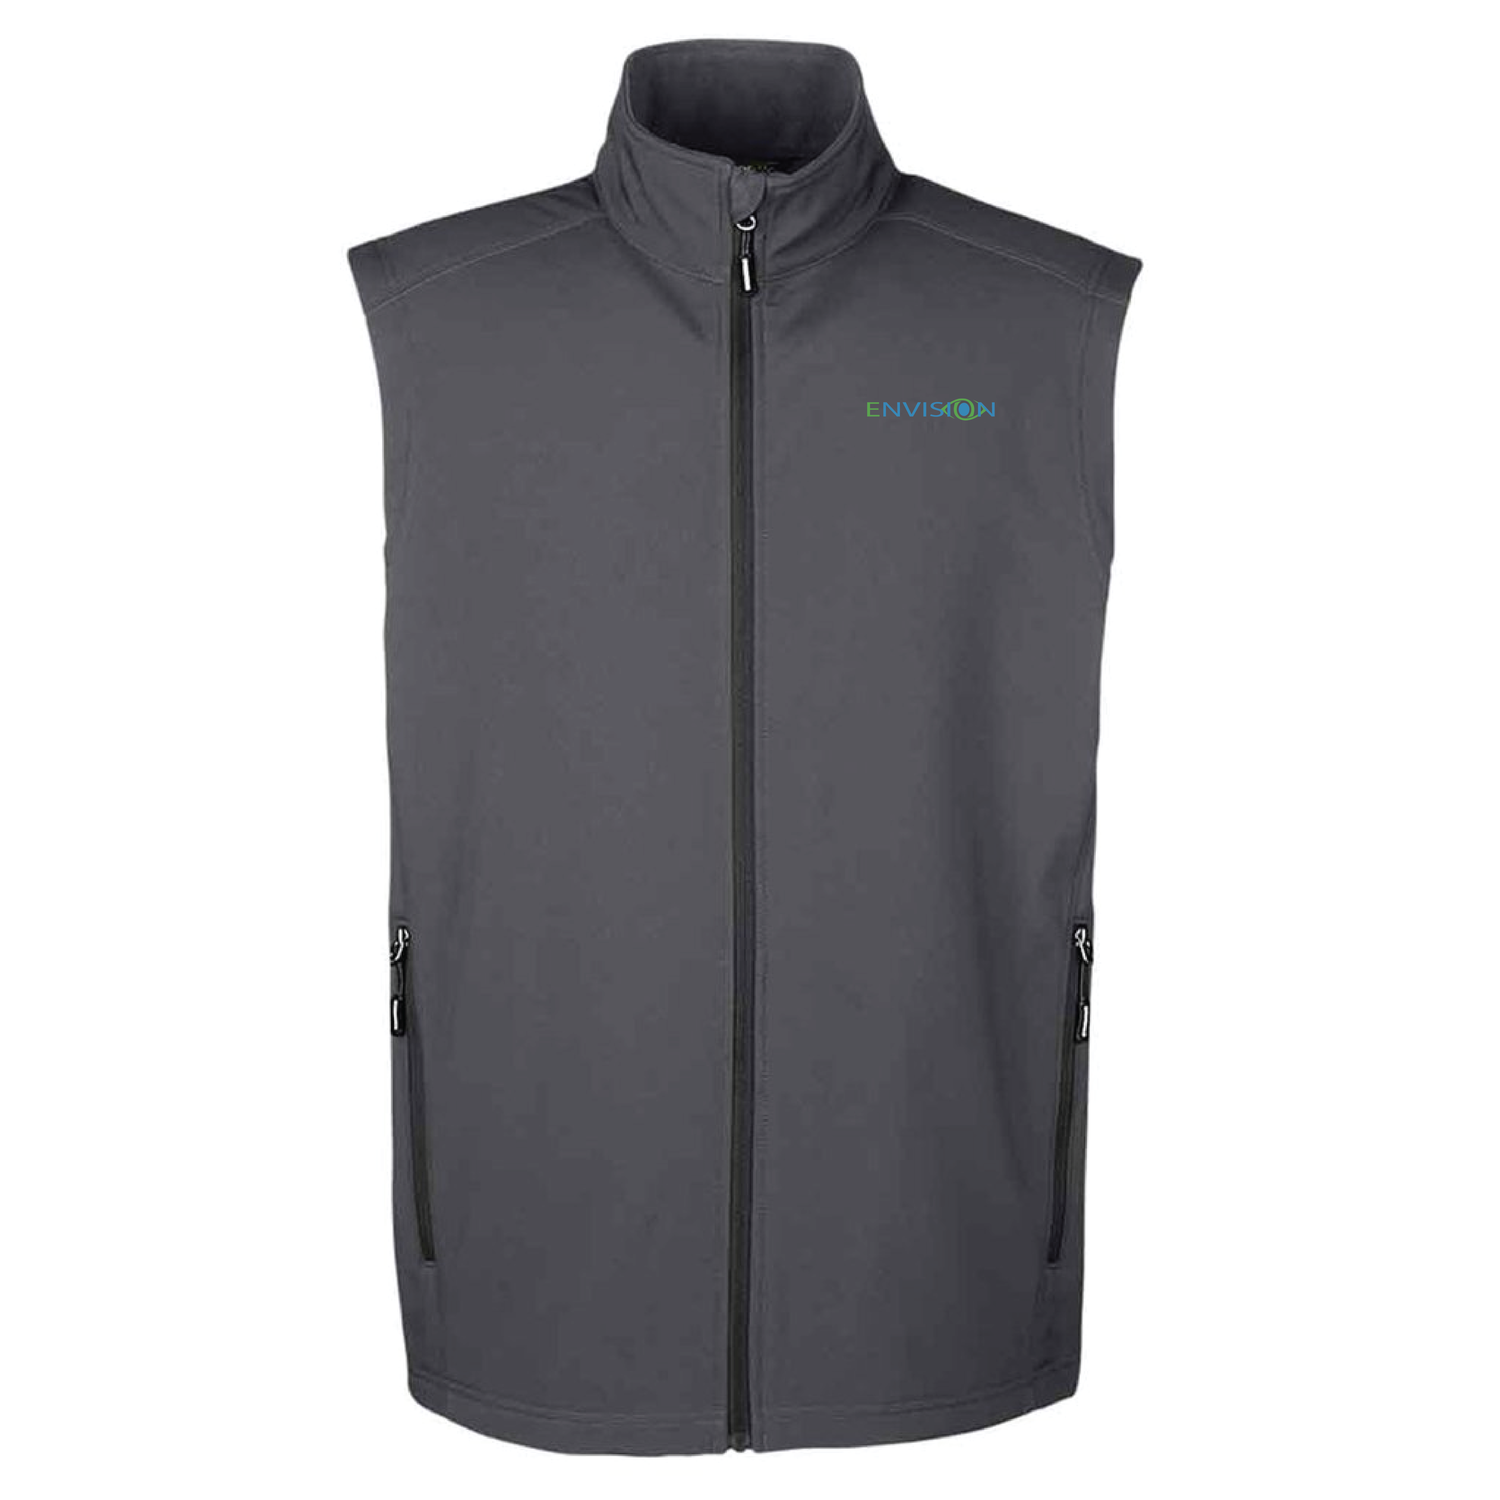 Envision Men's Vest: CE701 Ash City - Core 365 Men's Cruise Two-Layer Fleece Bonded Soft Shell Vest